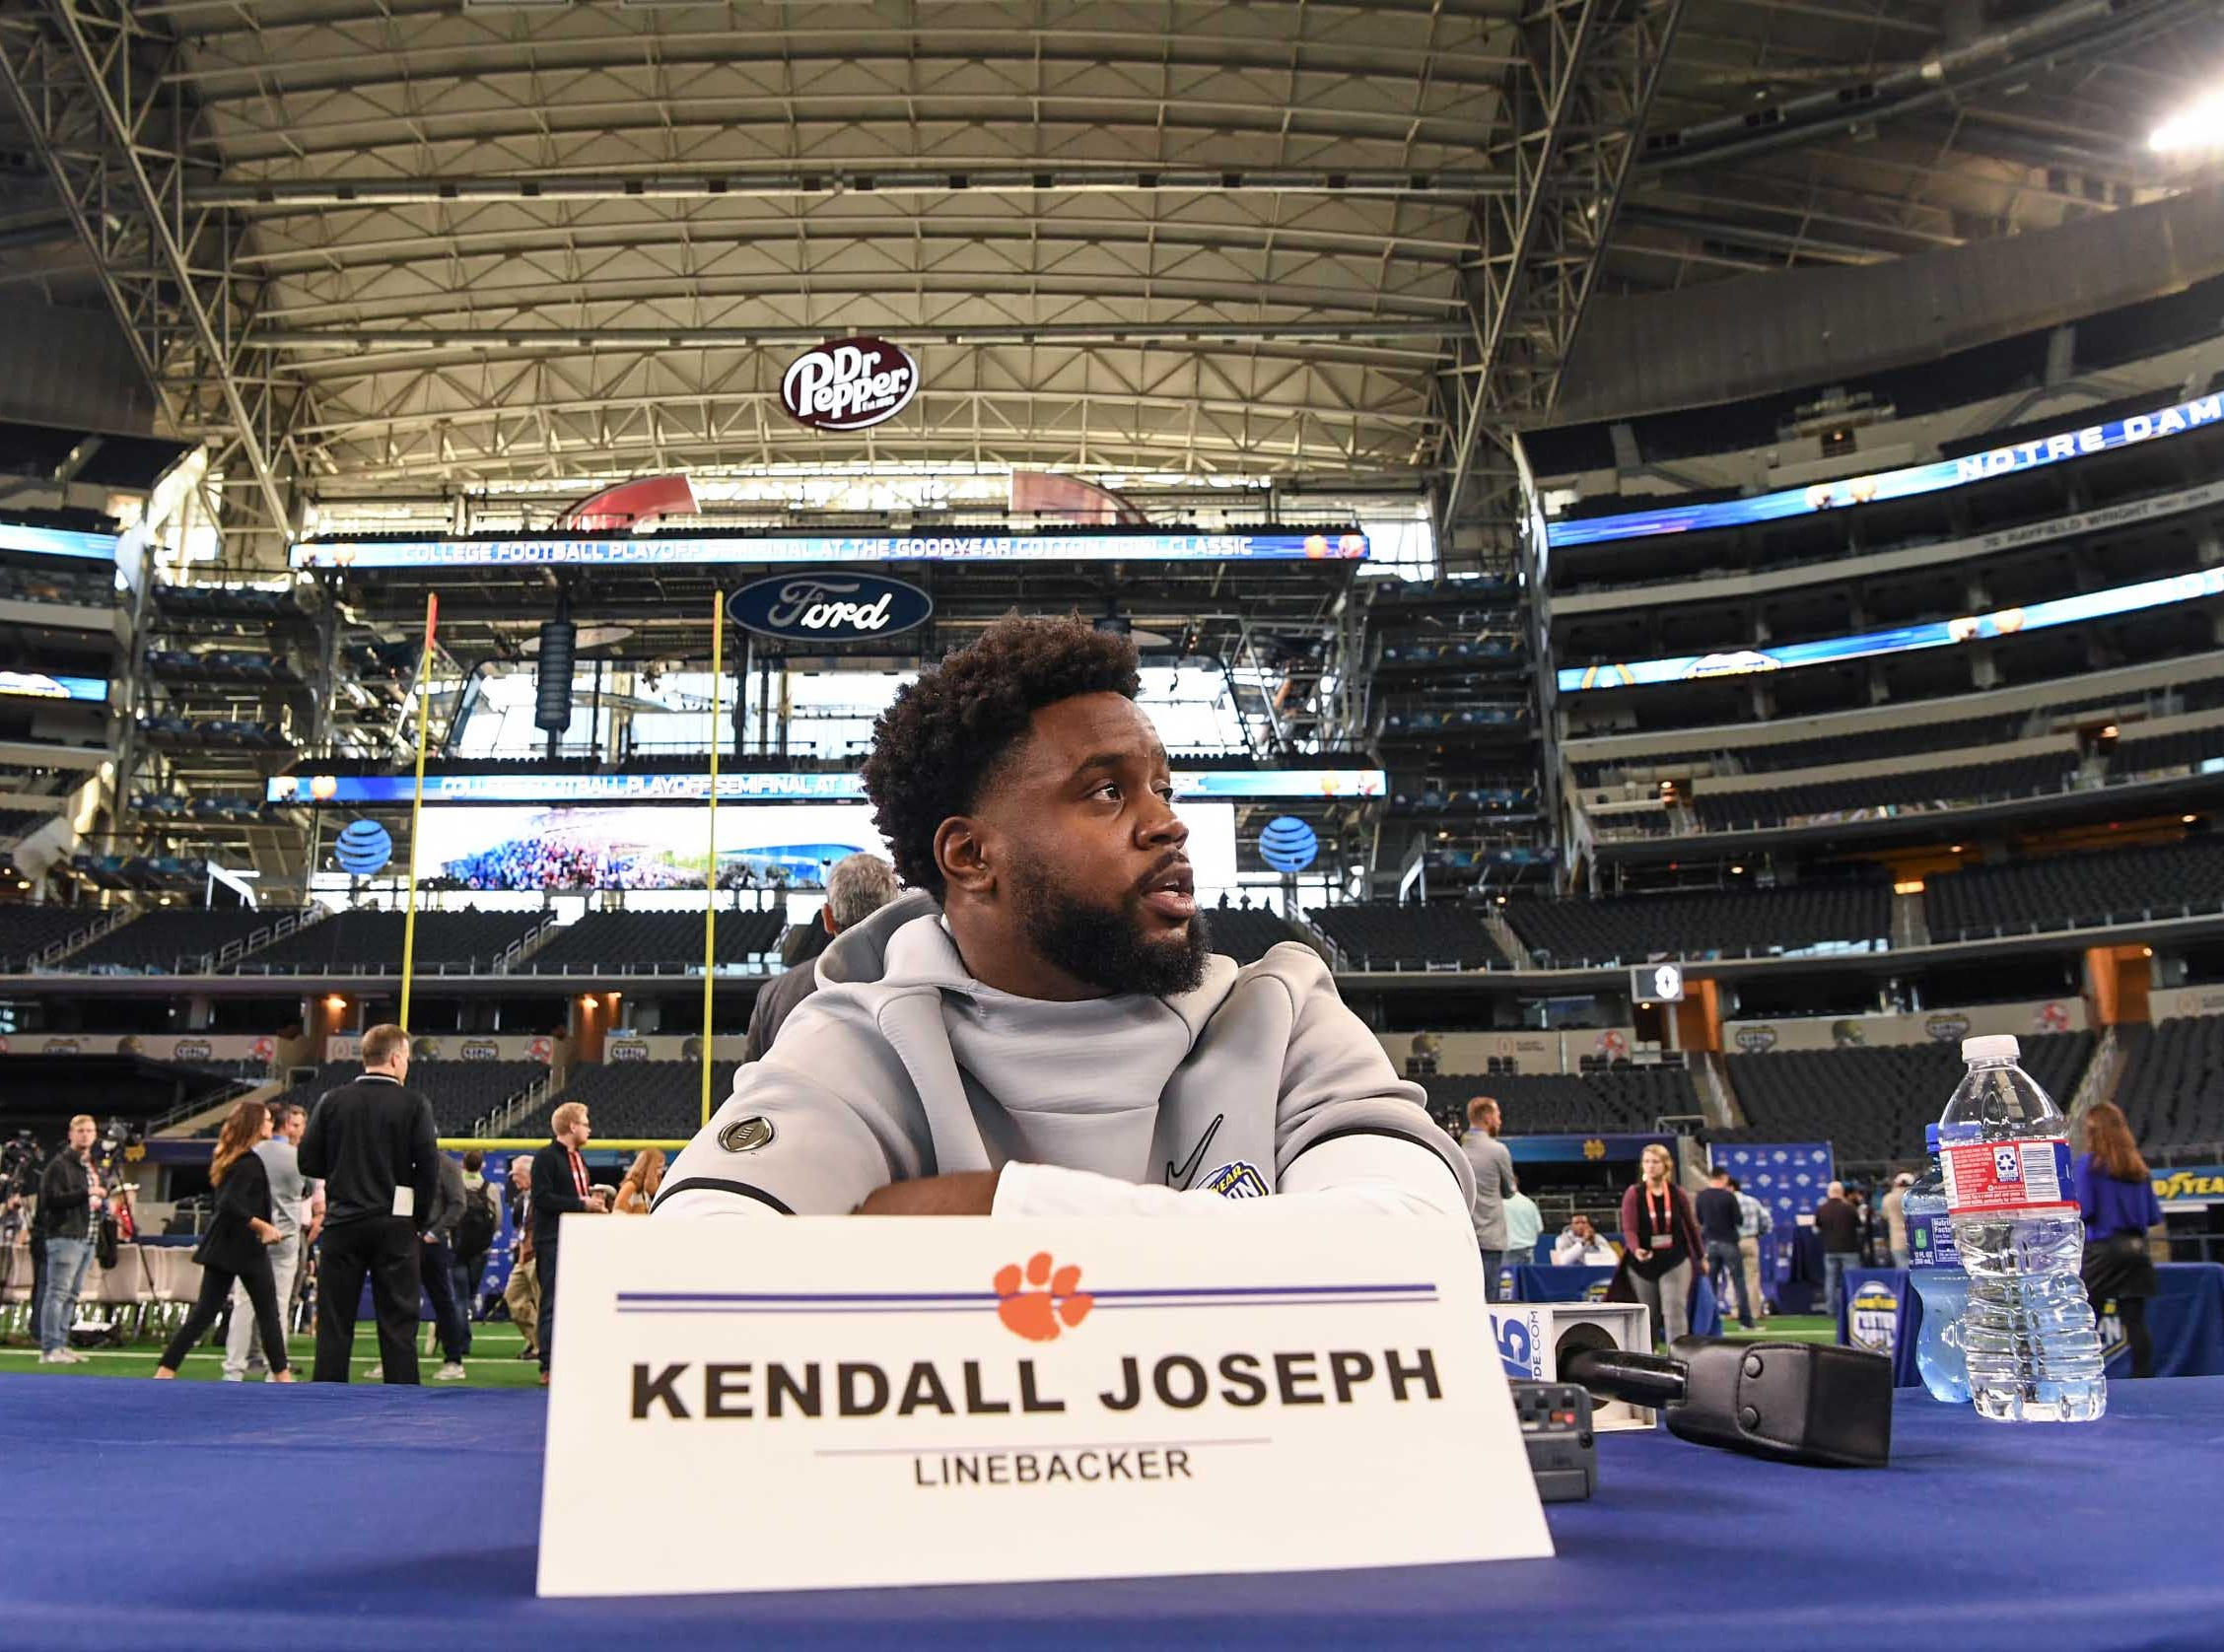 Clemson linebacker Kendall Joseph during Media Day for Clemson and Notre Dame at the AT&T Stadium in Dallas December 27, 2018.